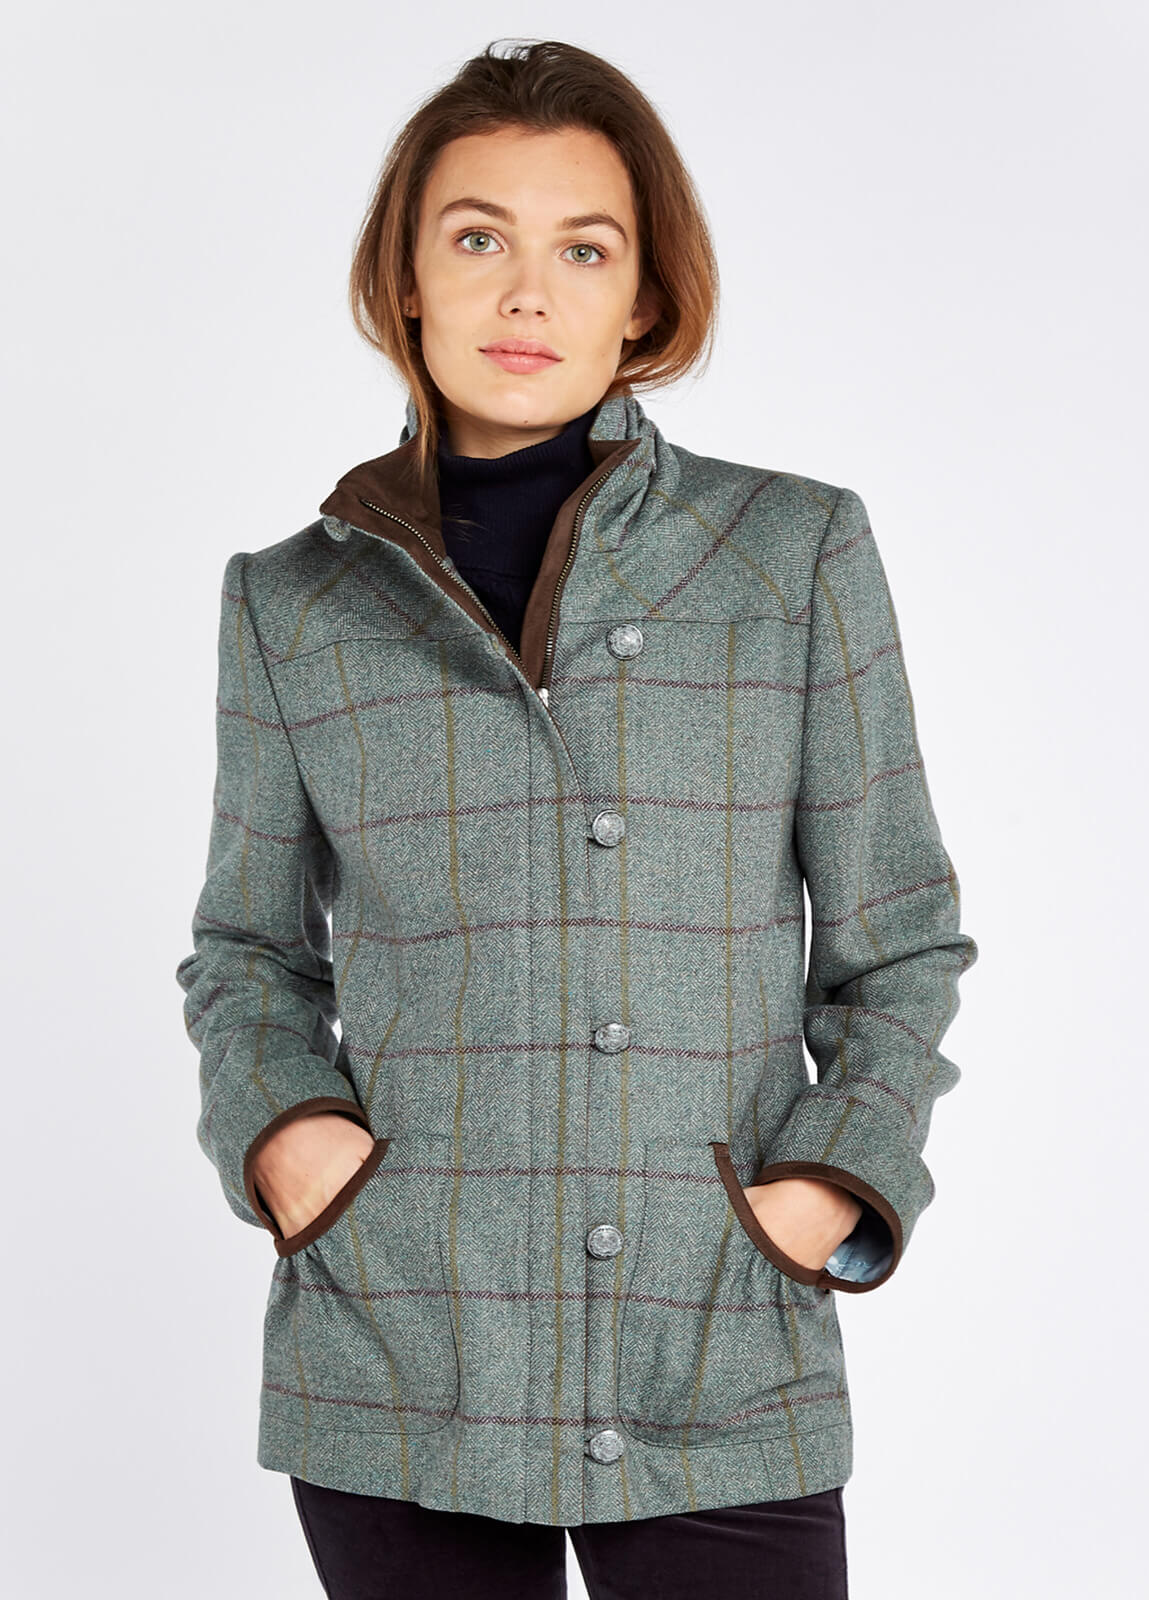 Bracken Damen Tweed Jacke Sorrel